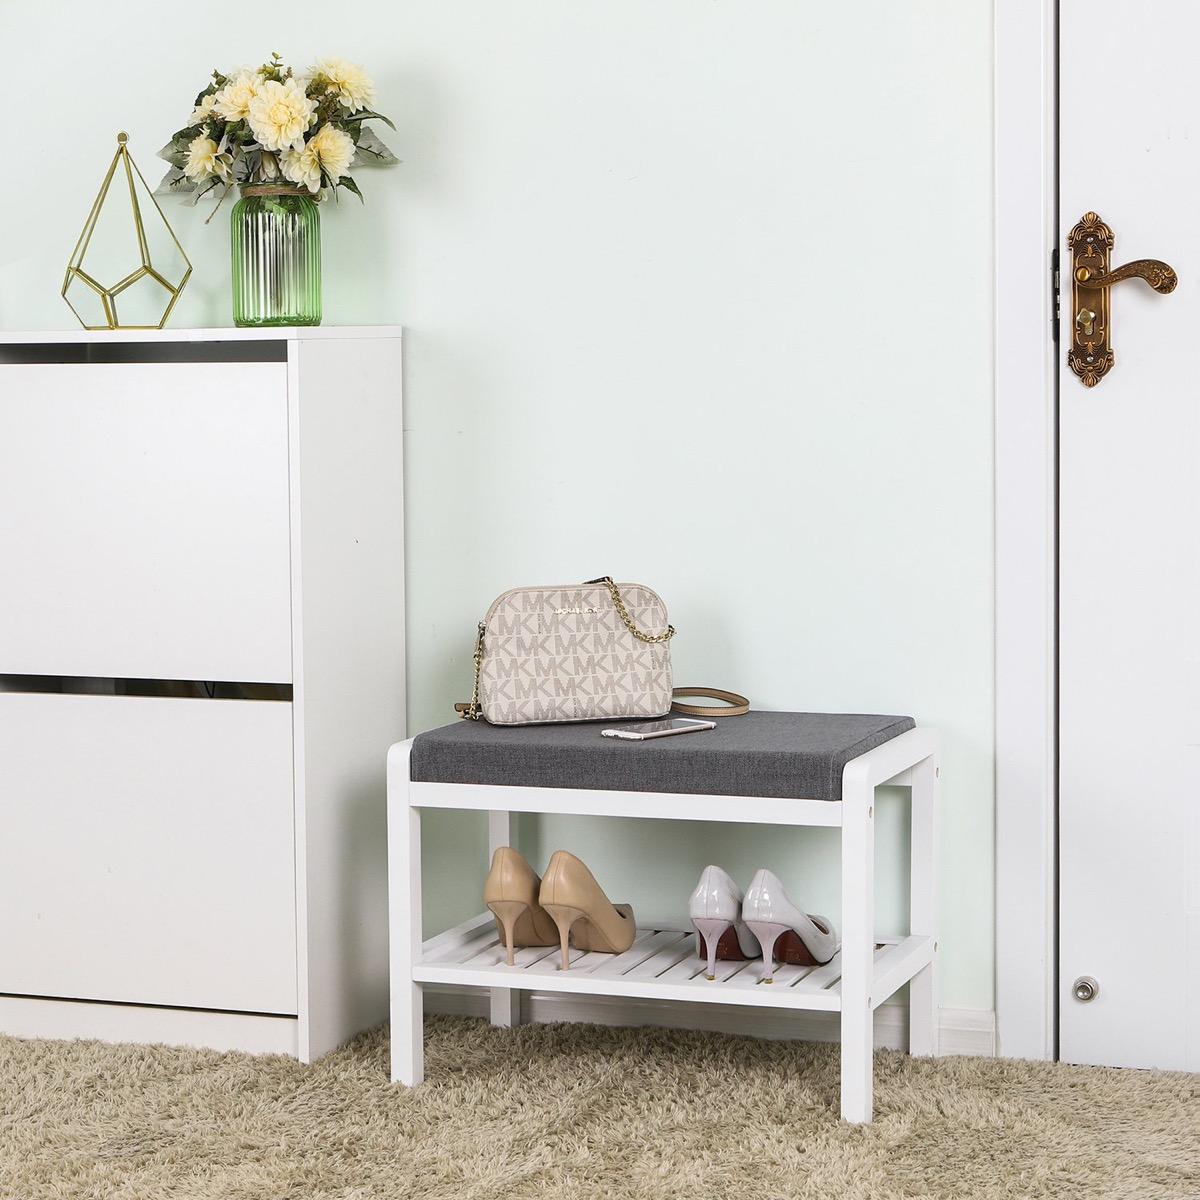 Modern-Entryway-Bench-With-Storage-Small-White-With-Grey-Cushion-1-Person-Seat